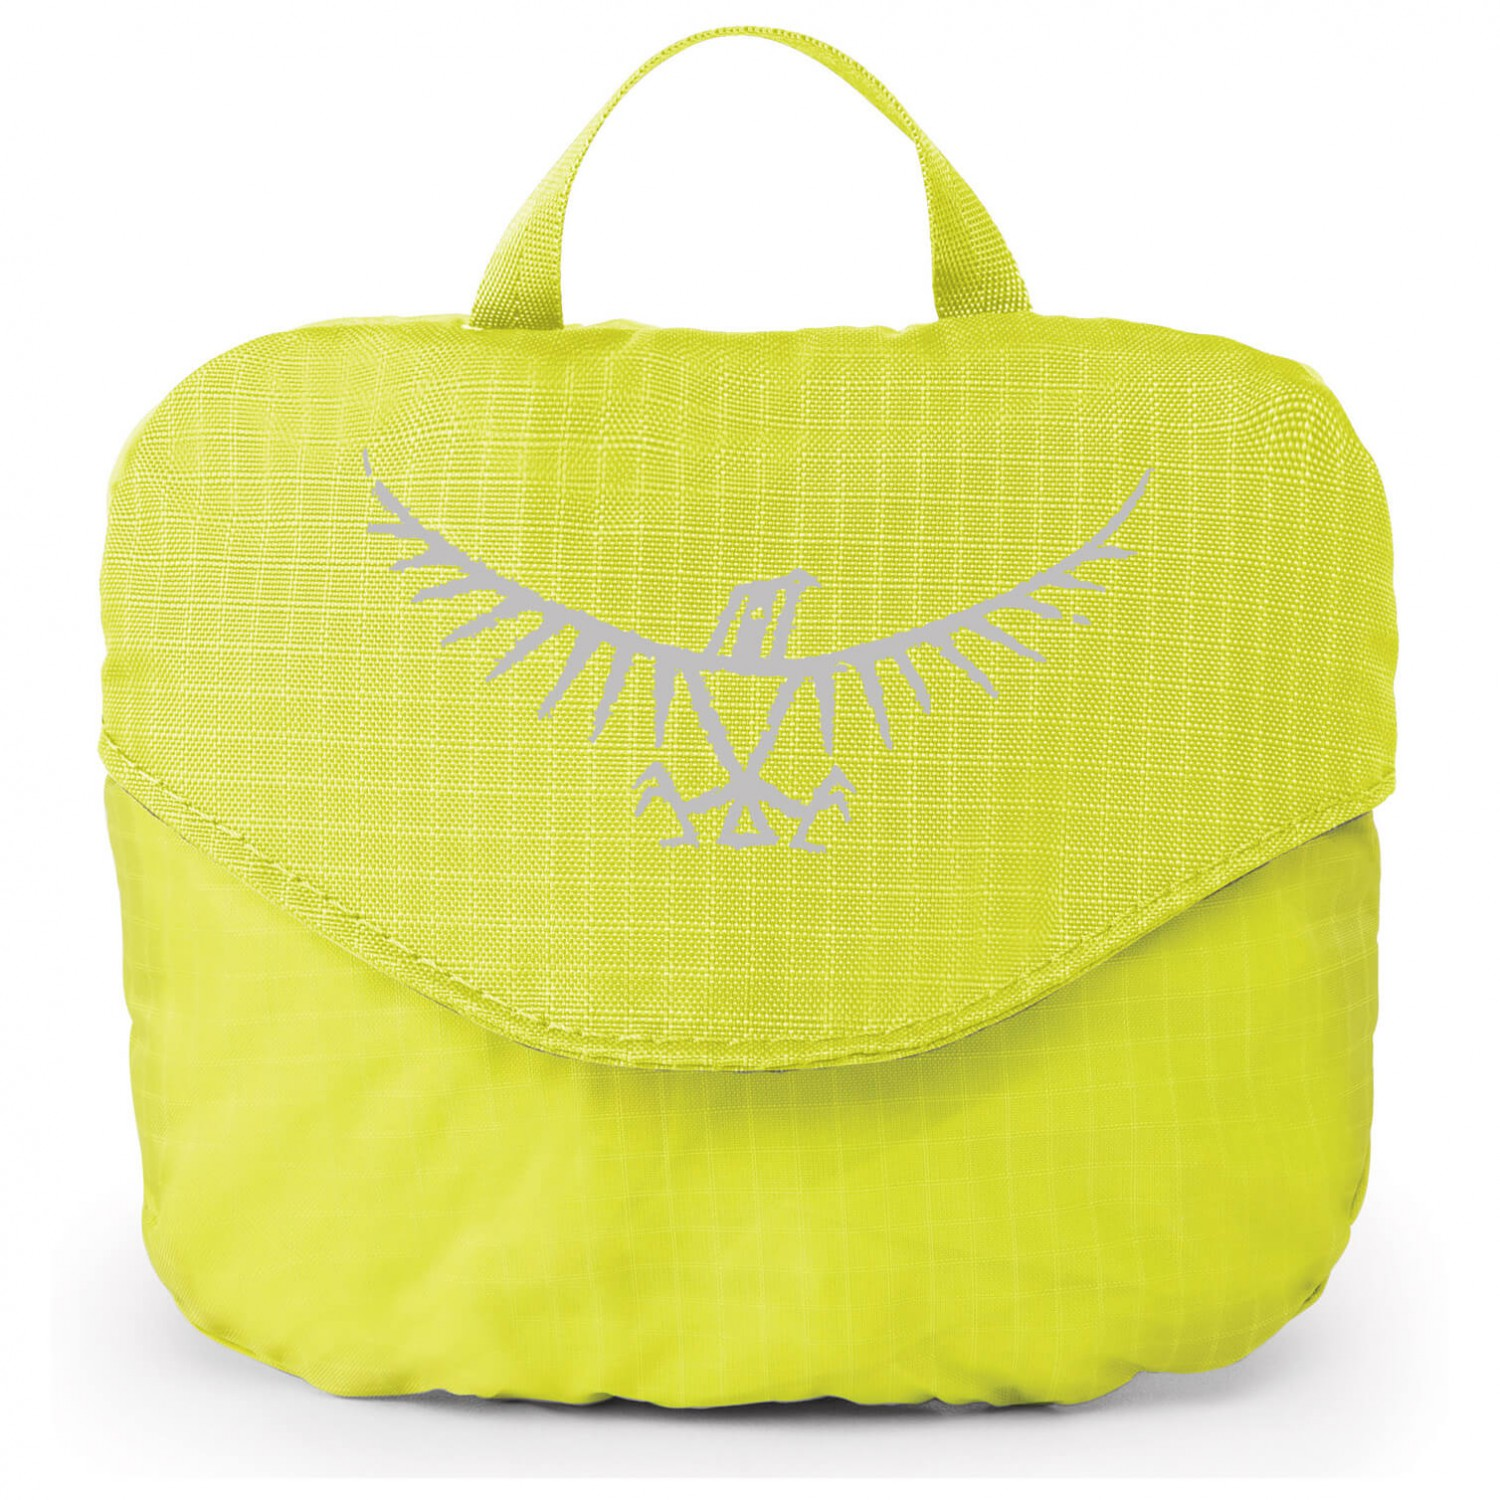 2b8ecd3e20b Osprey Ultralight High Vis Raincover - Regenhoes online kopen ...